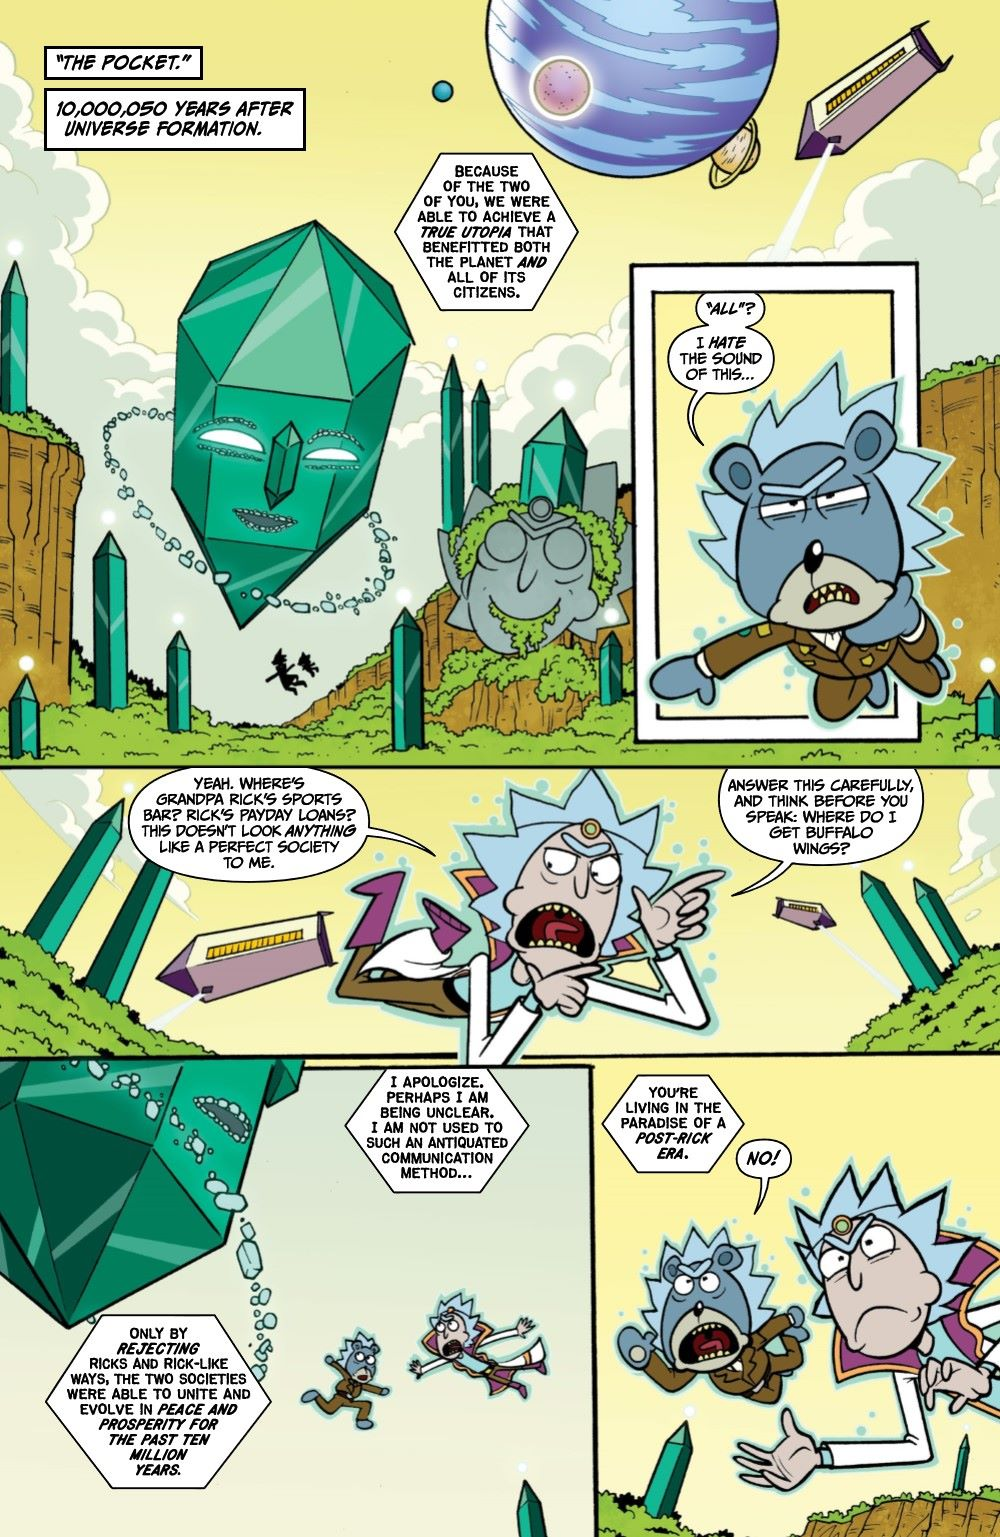 RICKMORTY-WORLDSAPART-4-REFERENCE-04 ComicList Previews: RICK AND MORTY WORLDS APART #4